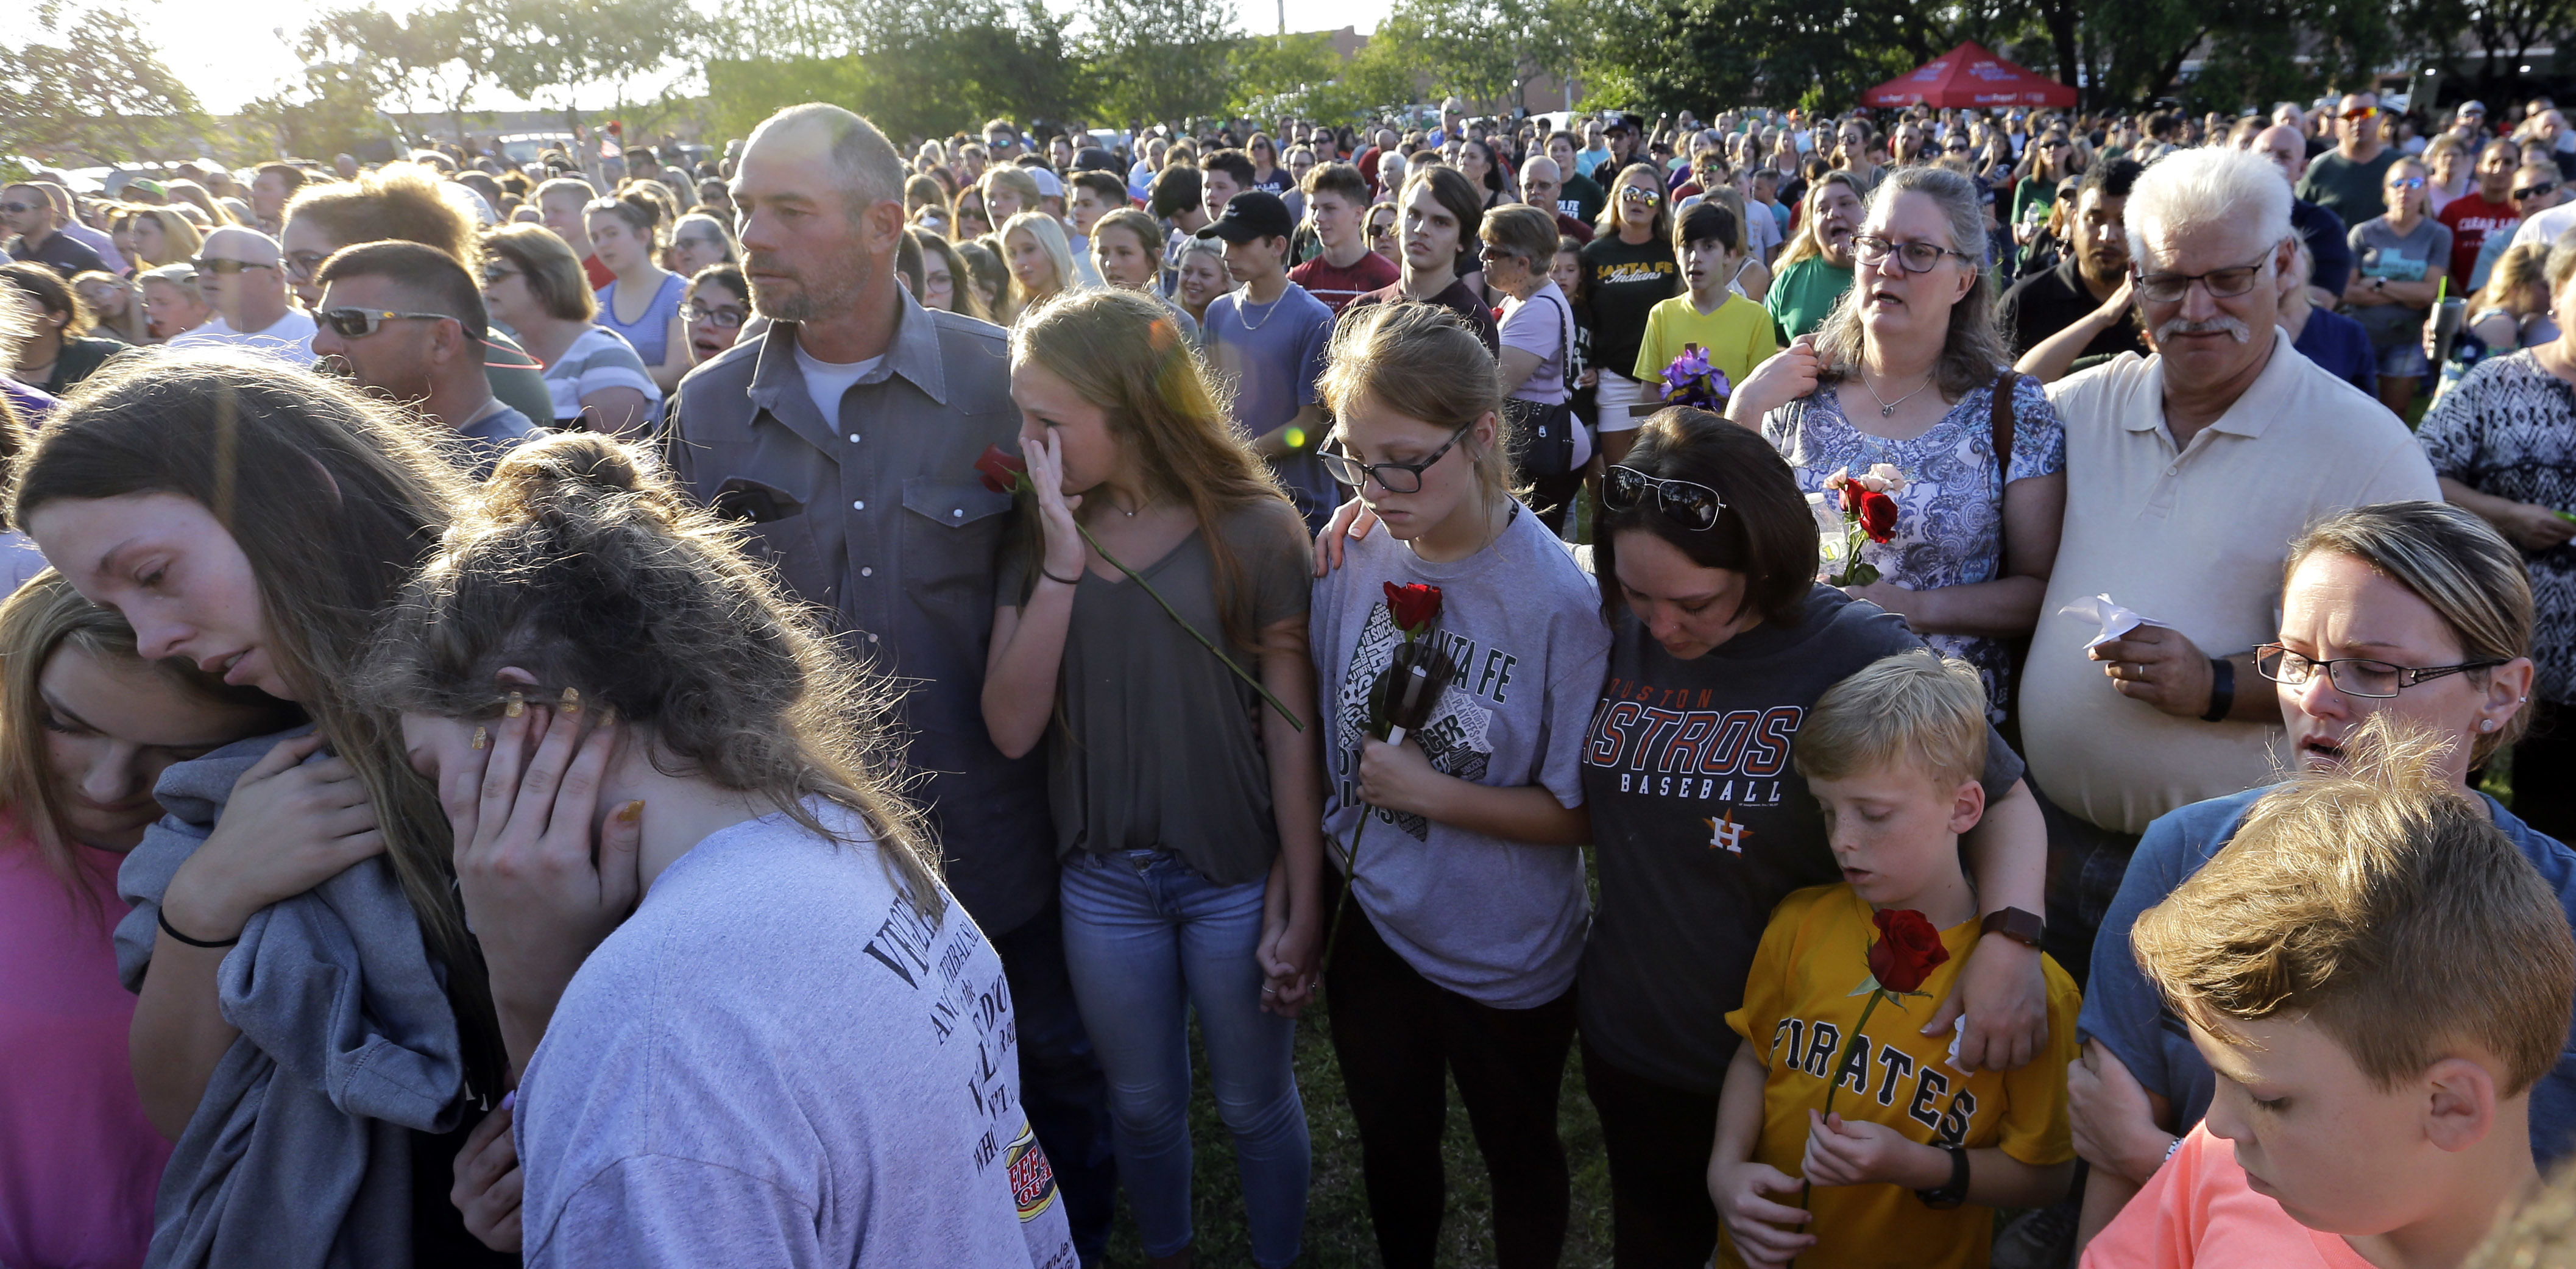 <div class='meta'><div class='origin-logo' data-origin='AP'></div><span class='caption-text' data-credit='AP'>Mourners gather during a prayer vigil following a shooting at Santa Fe High School in Santa Fe, Texas, on Friday, May 18, 2018. (AP Photo/David J. Phillip)</span></div>